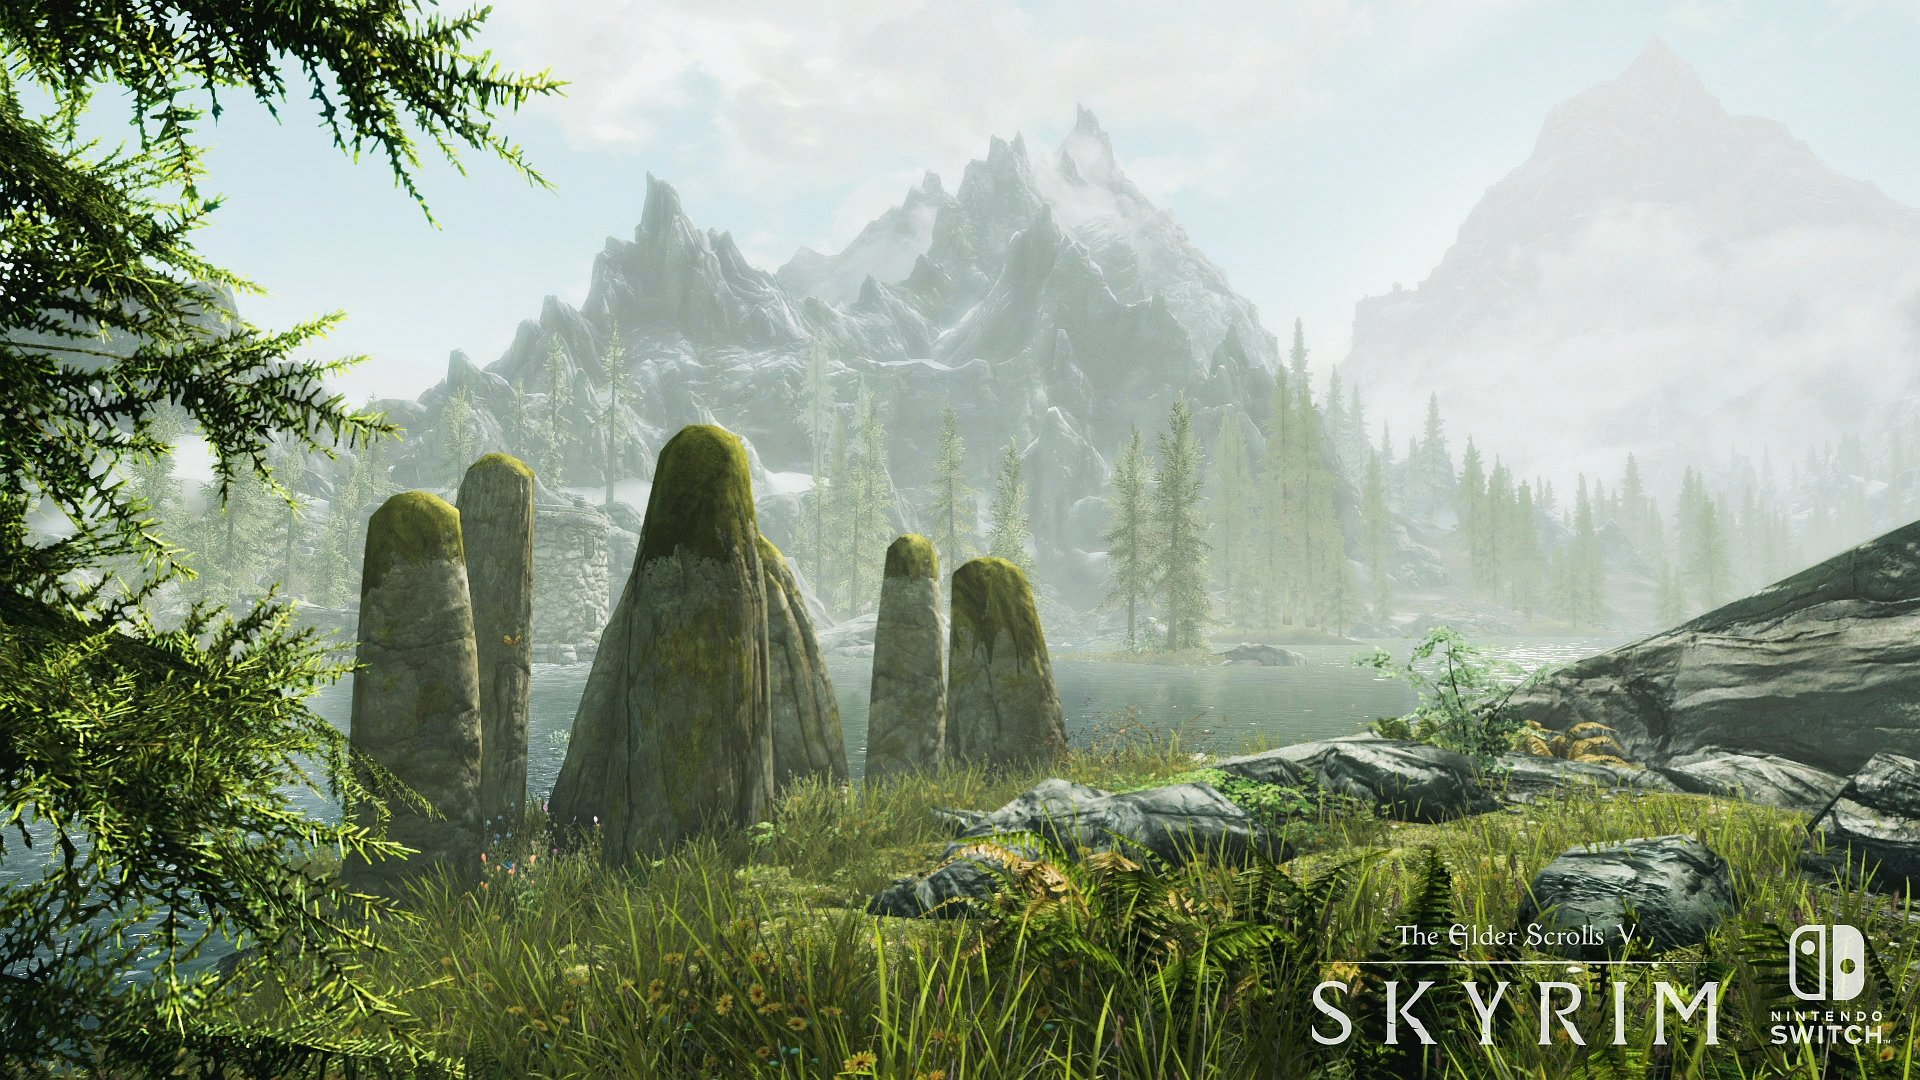 The Elder Scrolls V - Skyrim - Switch 02